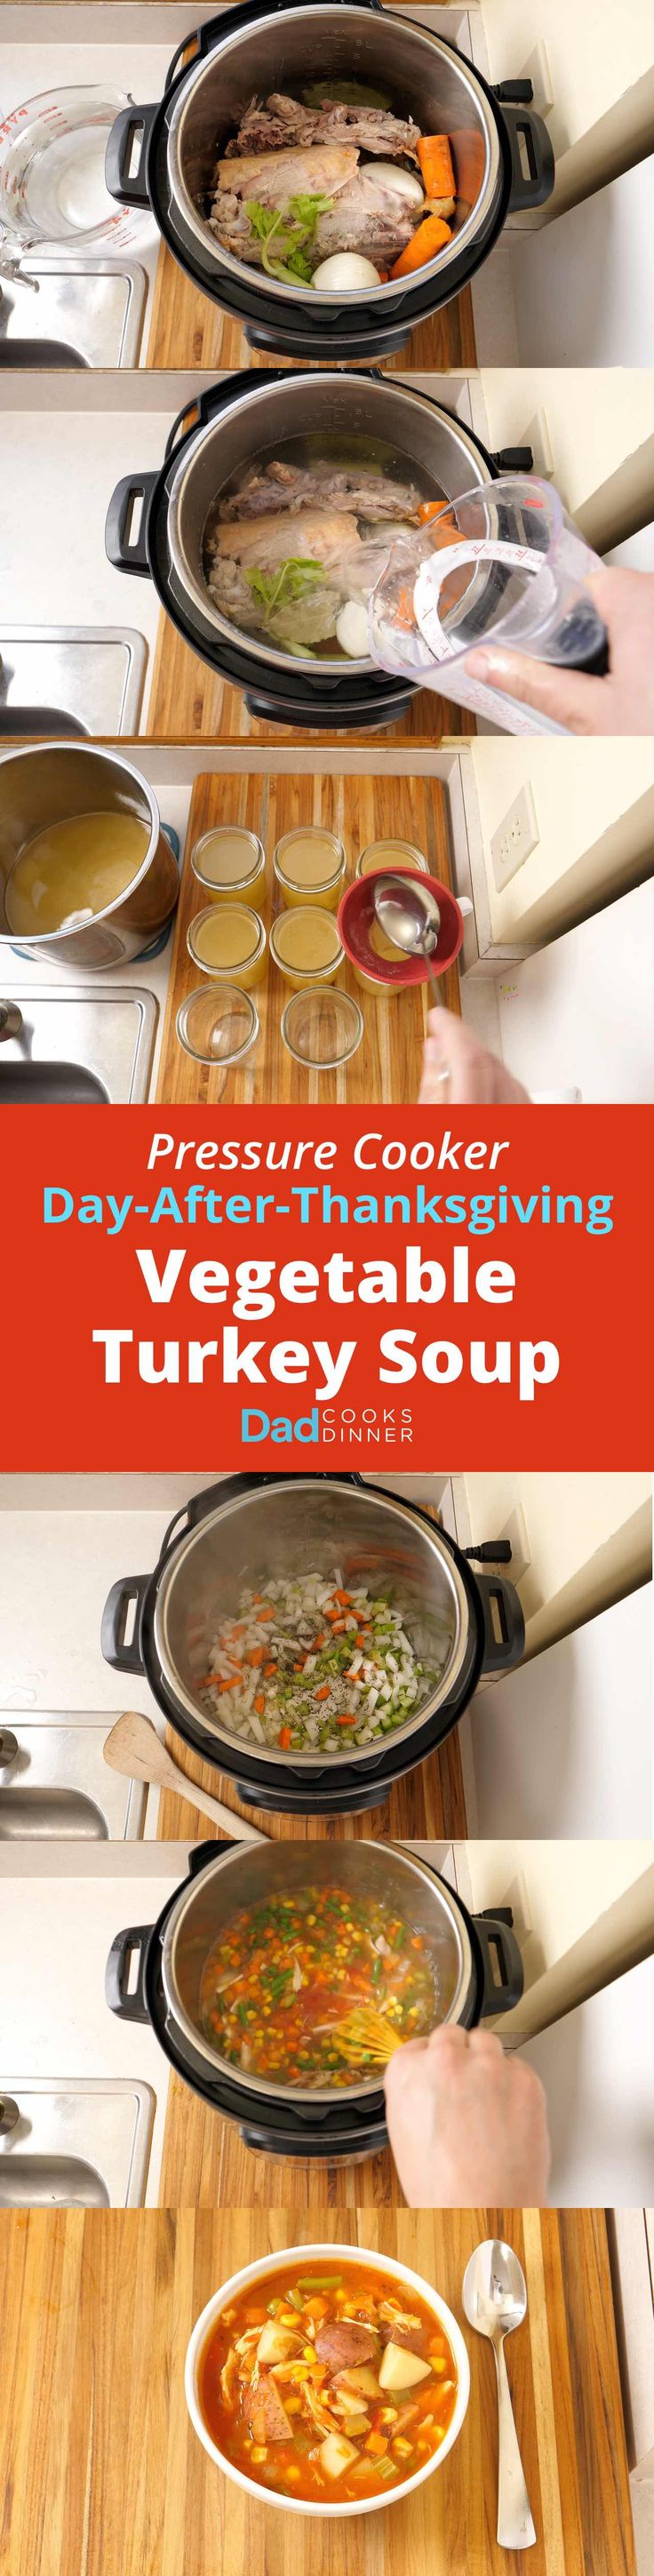 Pressure Cooker Day-After-Thanksgiving Vegetable Turkey Soup. A great way to use that leftover turkey carcass - and any other vegetables you have on hand - to make soup from scratch in your pressure cooker. | DadCooksDinner.com via @DadCooksDinner